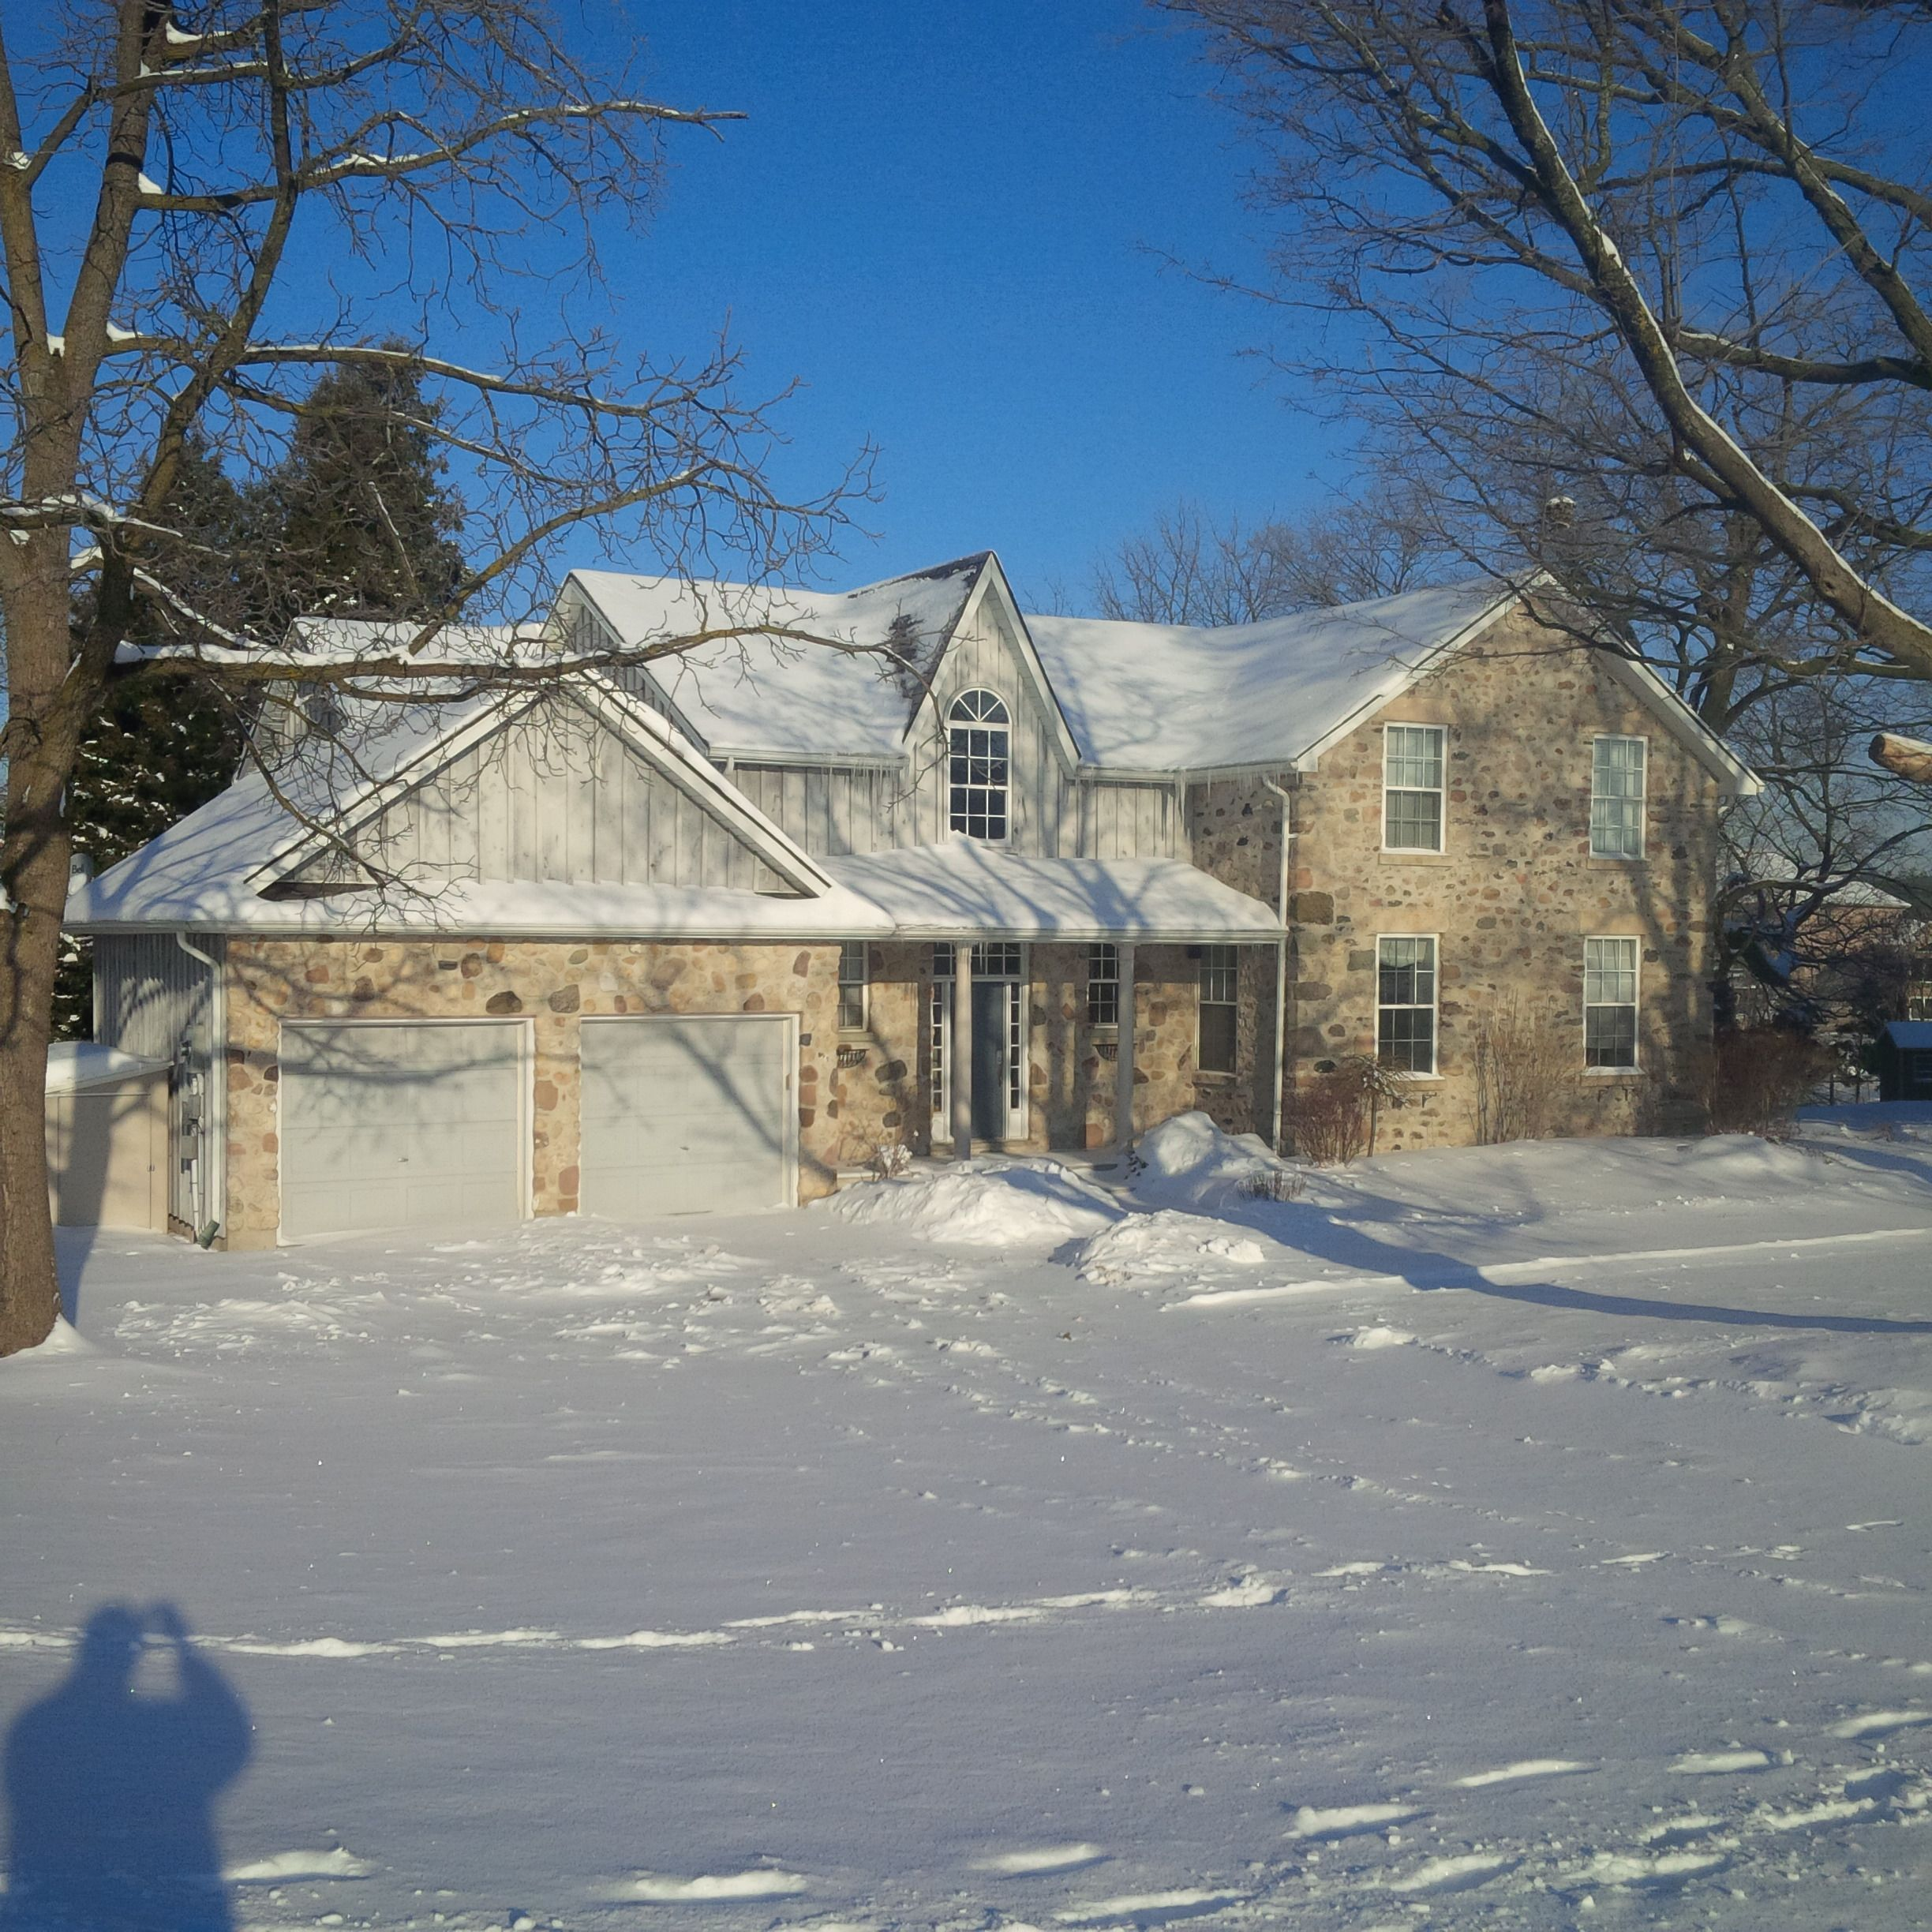 Spacious 5 bedroom, private home available Feb 1 at 1 Coopers Crt, Guelph. Century stone home with modern finishes. Located on 1/2 an acre property on south end. Attached double car garage & oversized deck surrounding the beautiful landscaping in the backyard. Natural gas heating, gas fireplace, front loading laundry machines included. Unit is available for $2800 plus util. To set up a time to see the unit, please contact Inspirah Rental Management at 519-515-0411 option 2.